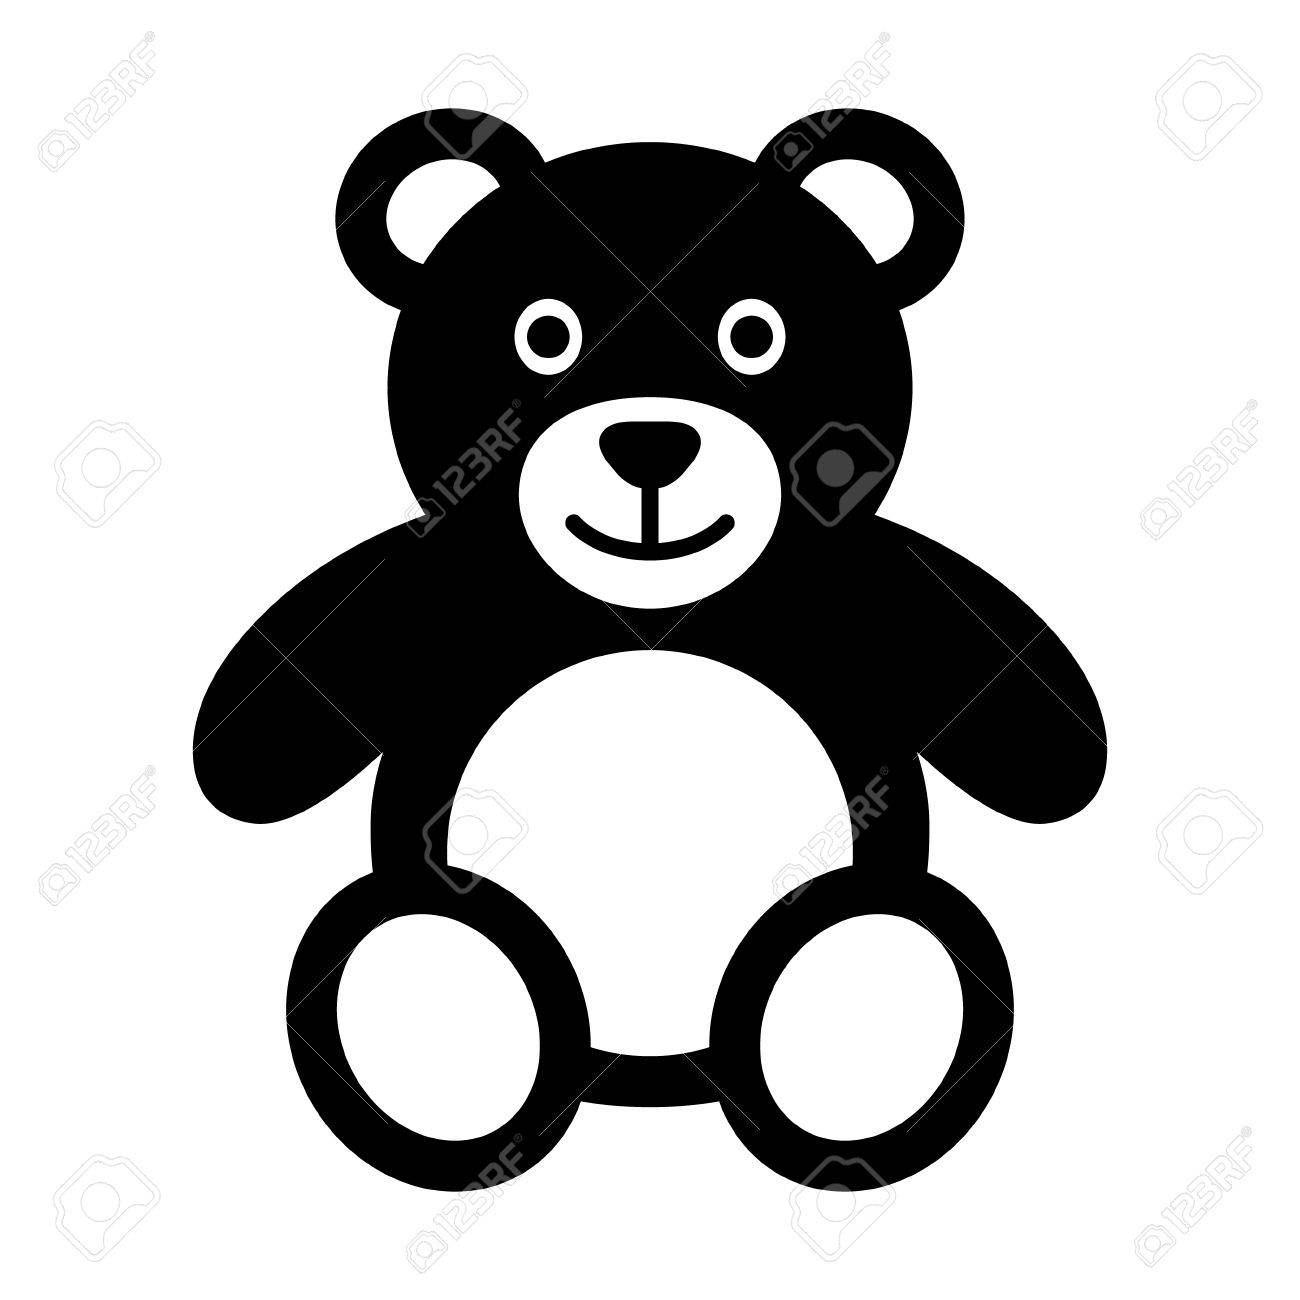 1300x1300 Teddy Bear Plush Toy Flat Icon For Apps And Websites Royalty Free